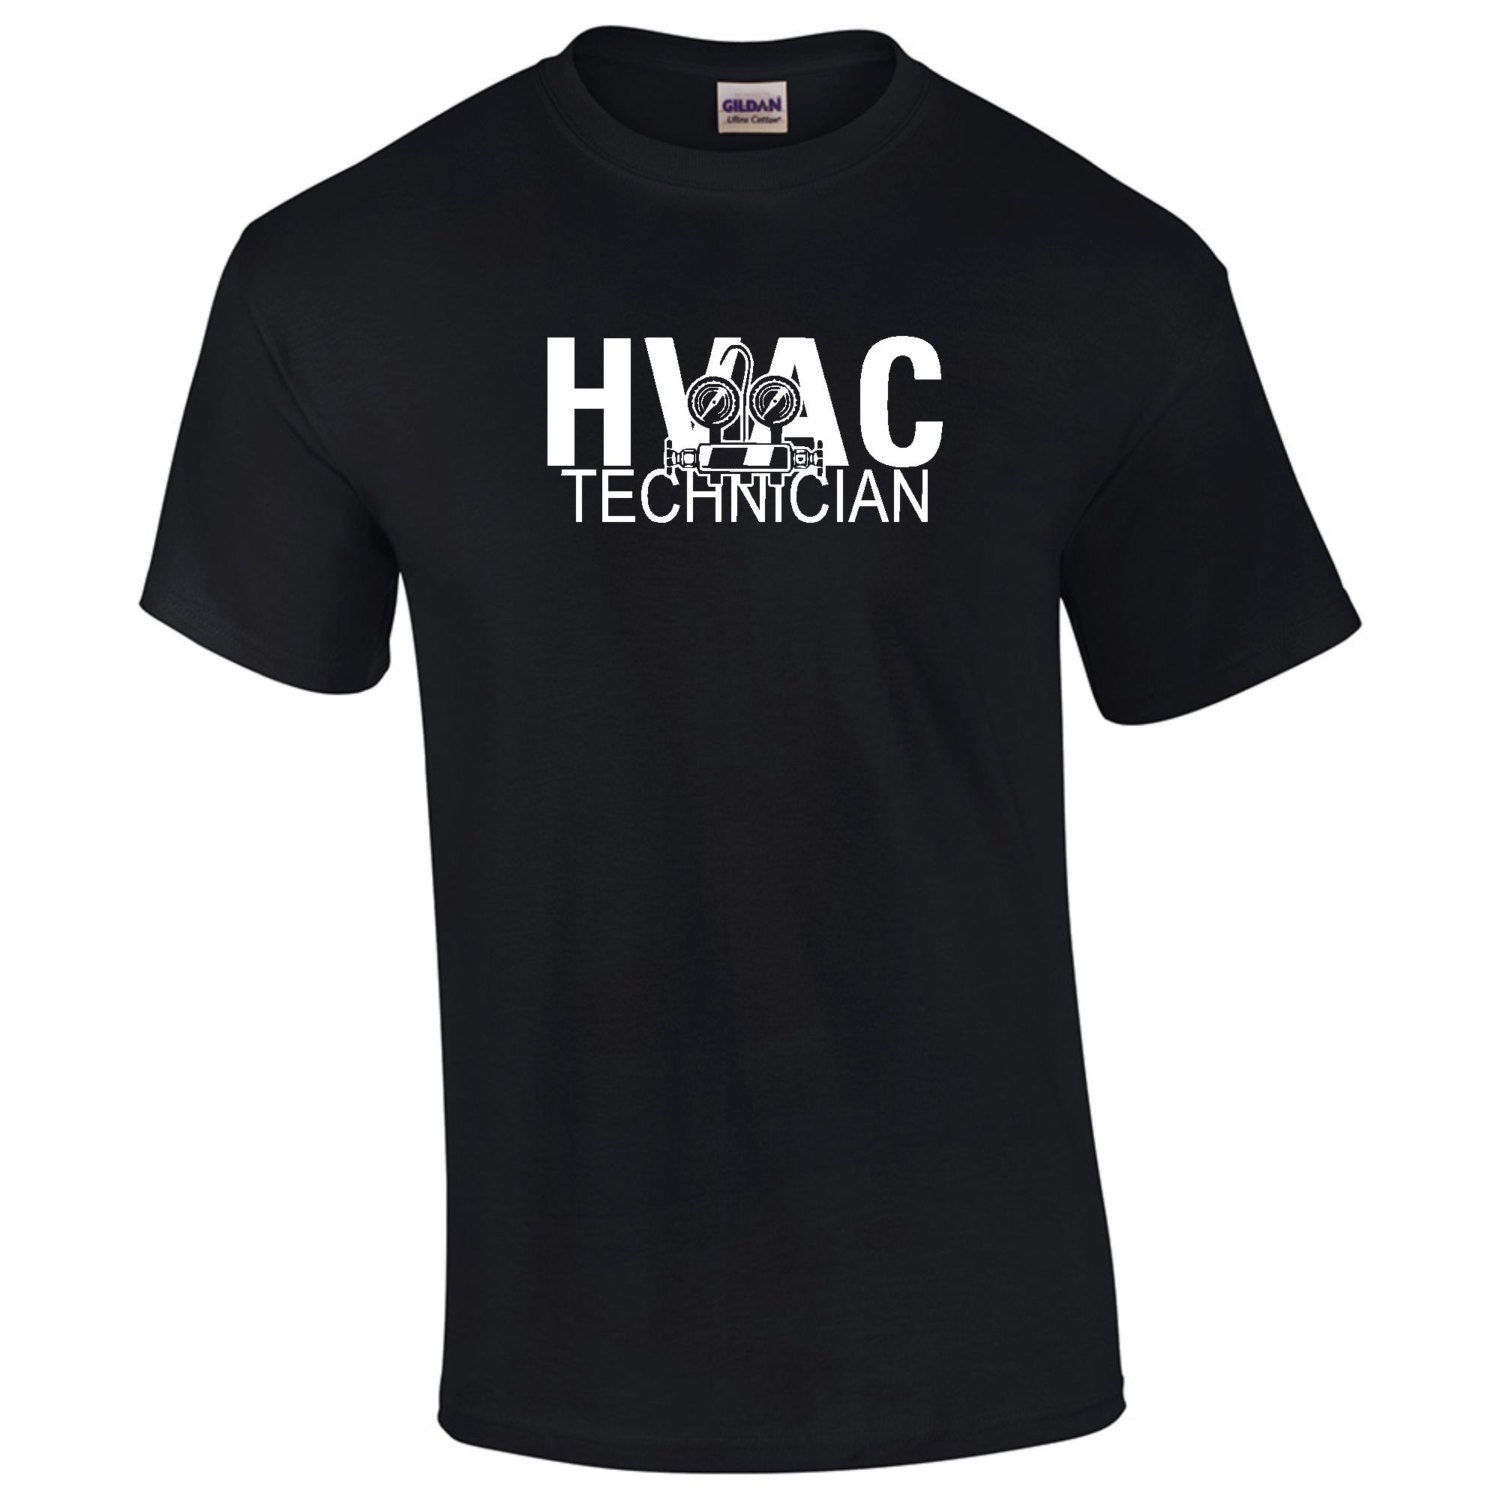 Hvac technician t shirt mens ladies womens kids big and tall for Design your own t shirt big and tall